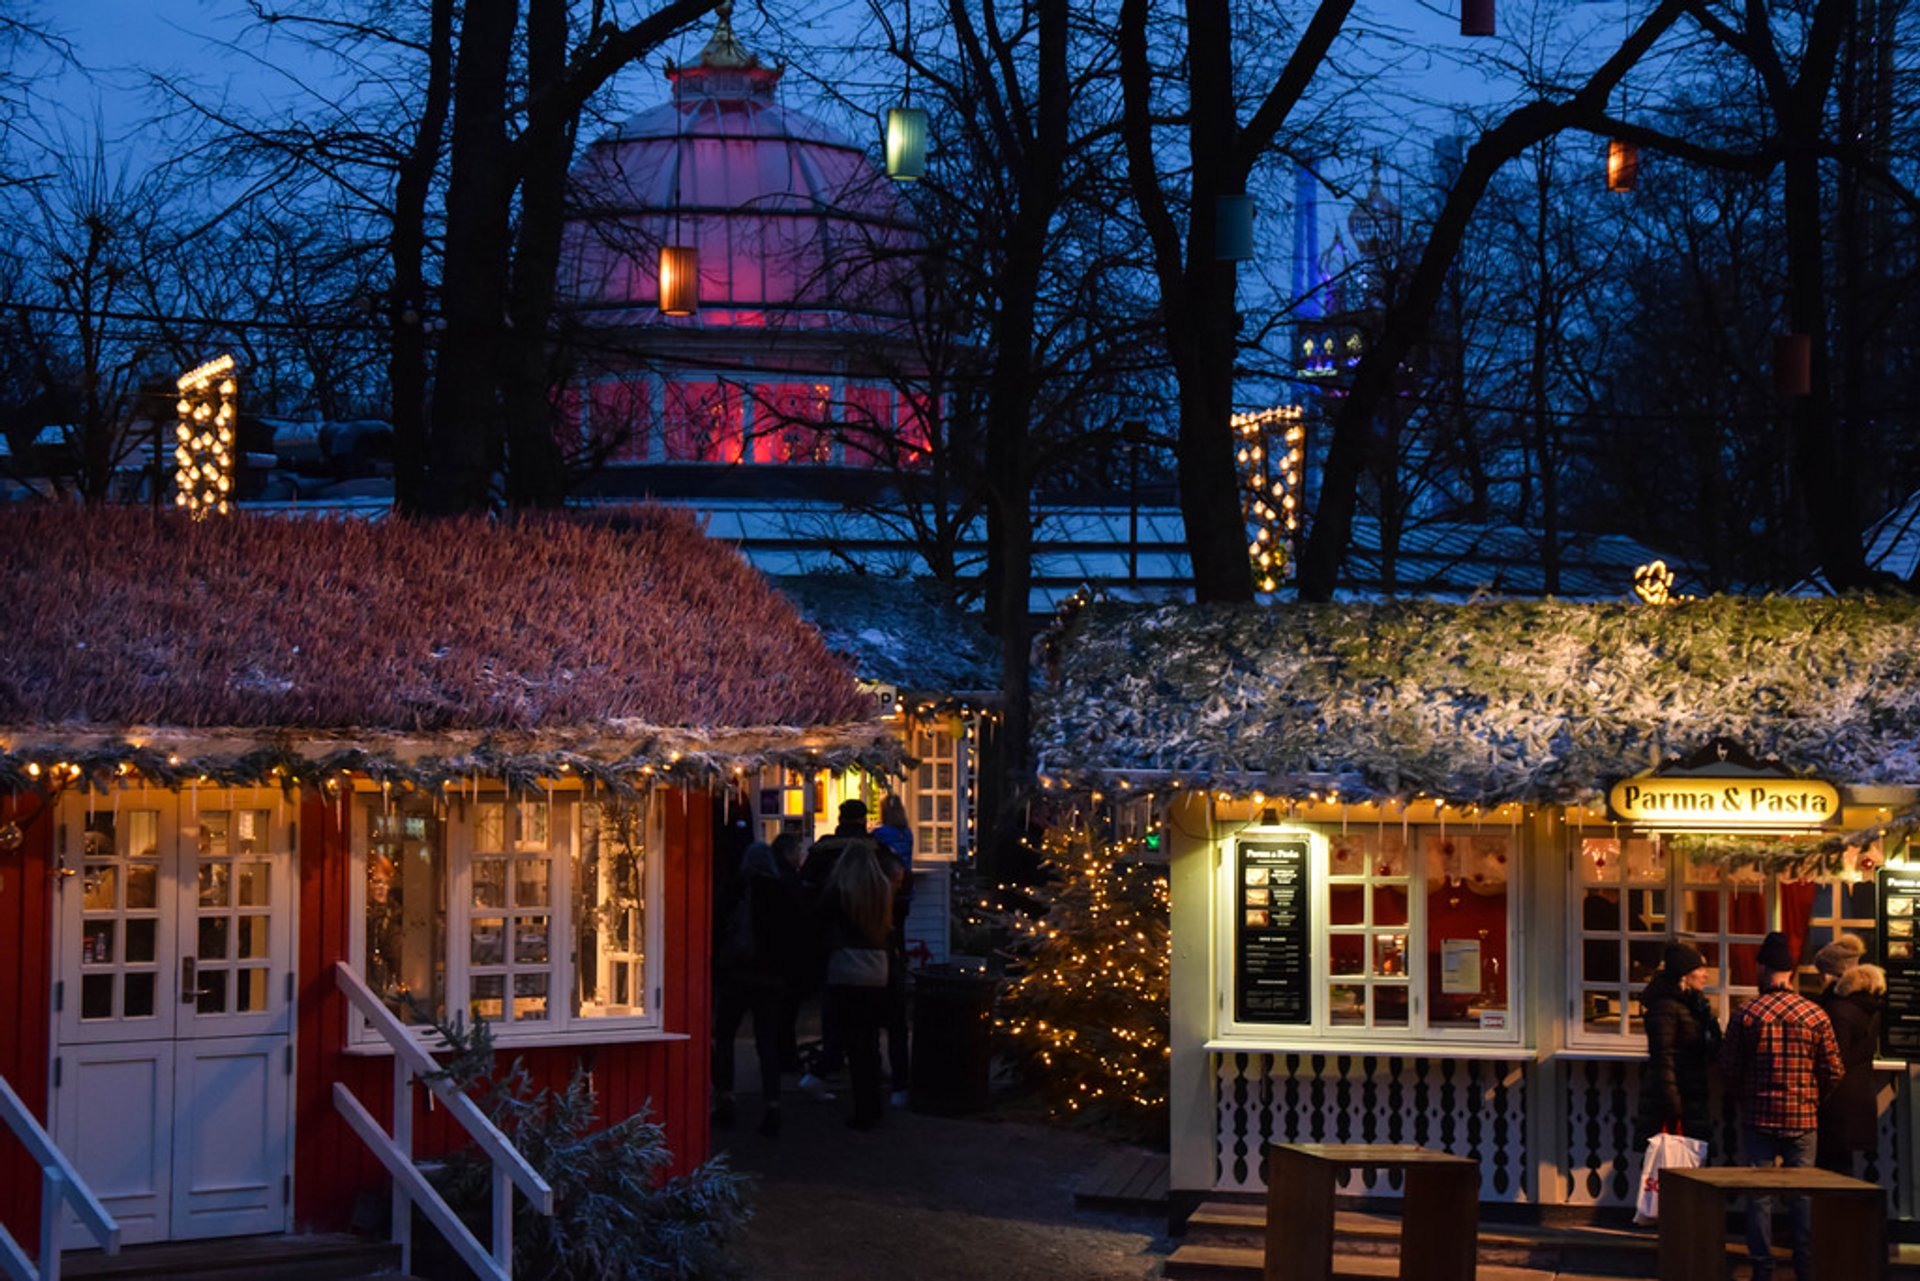 Christmas market at Tivoli, Copenhagen 2020